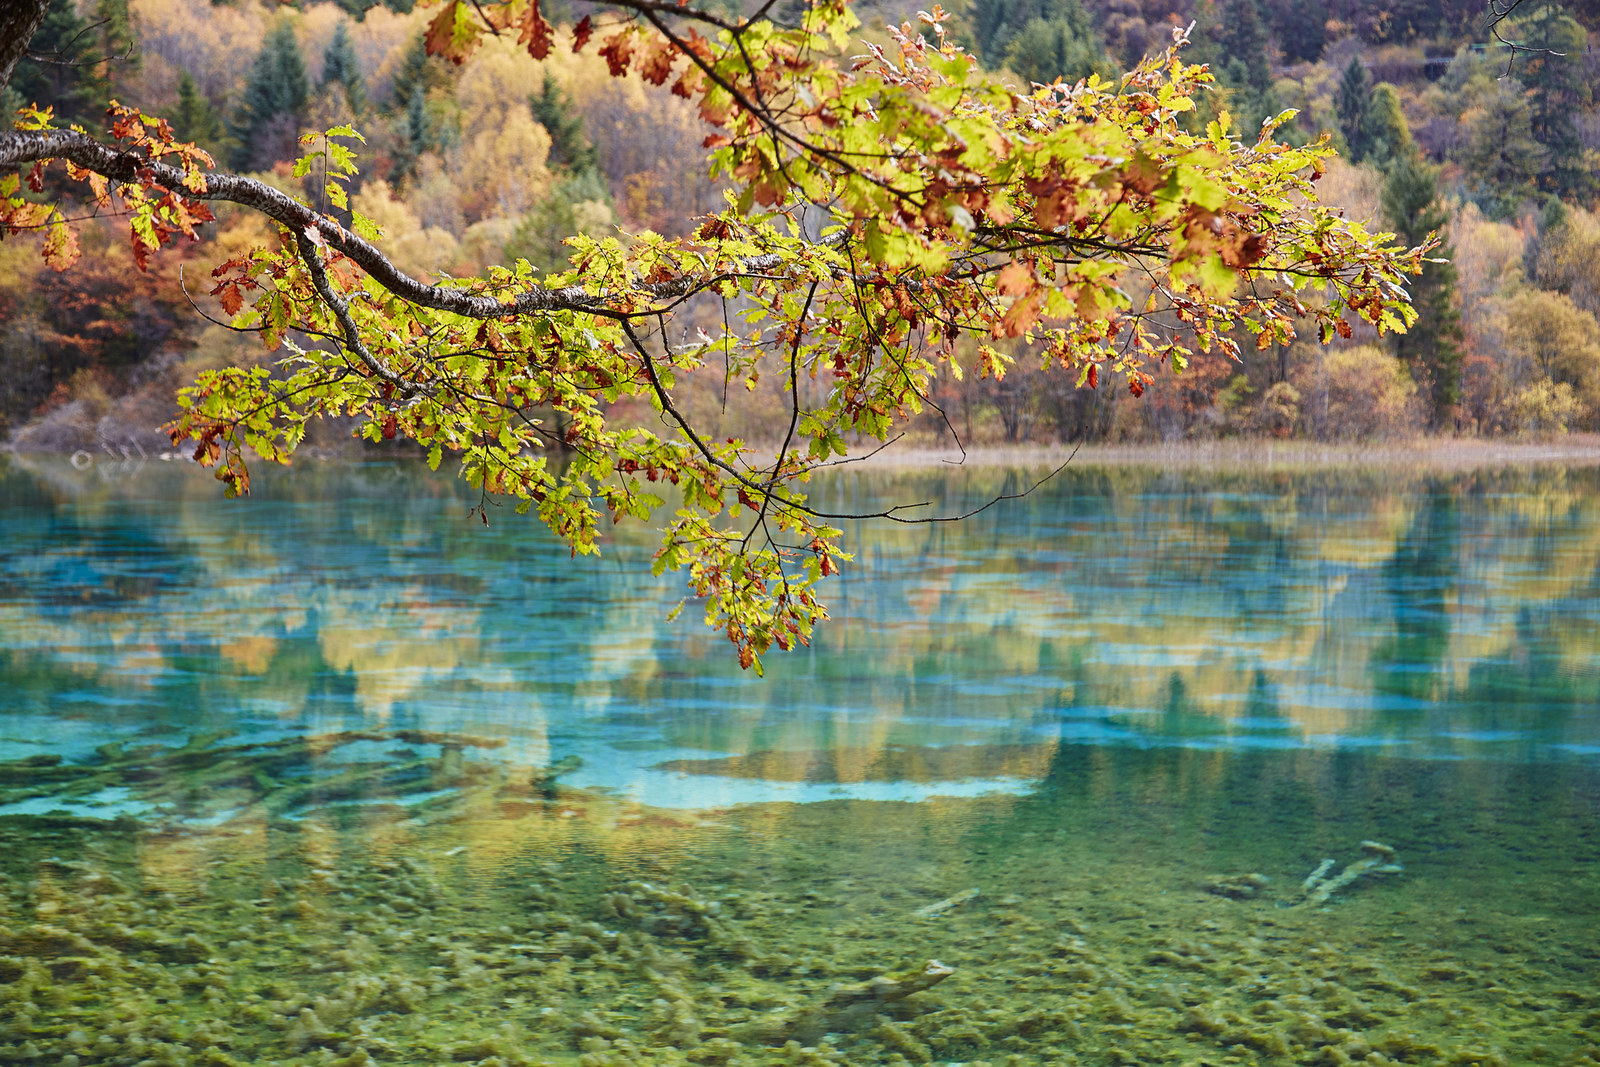 China: Jiuzhaigou Valley National Park -  Jiuzhaigou Valley is known for its multi-colored lakes and waterfalls. The water is so crystal clear, you can see right to the bottom.